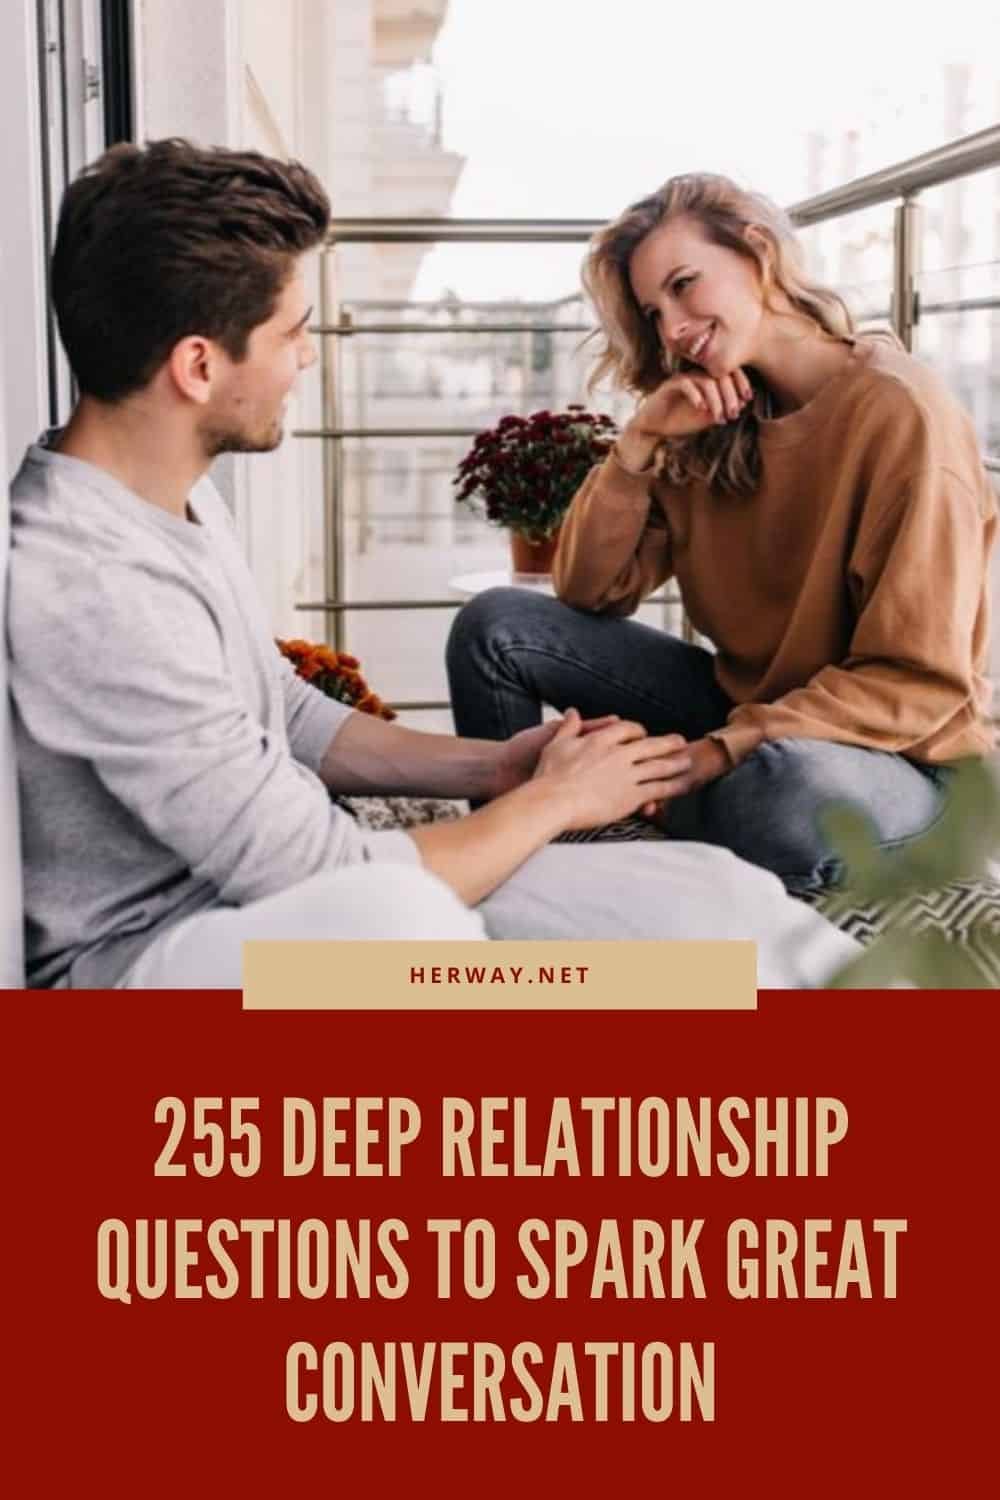 255 Deep Relationship Questions To Spark Great Conversation